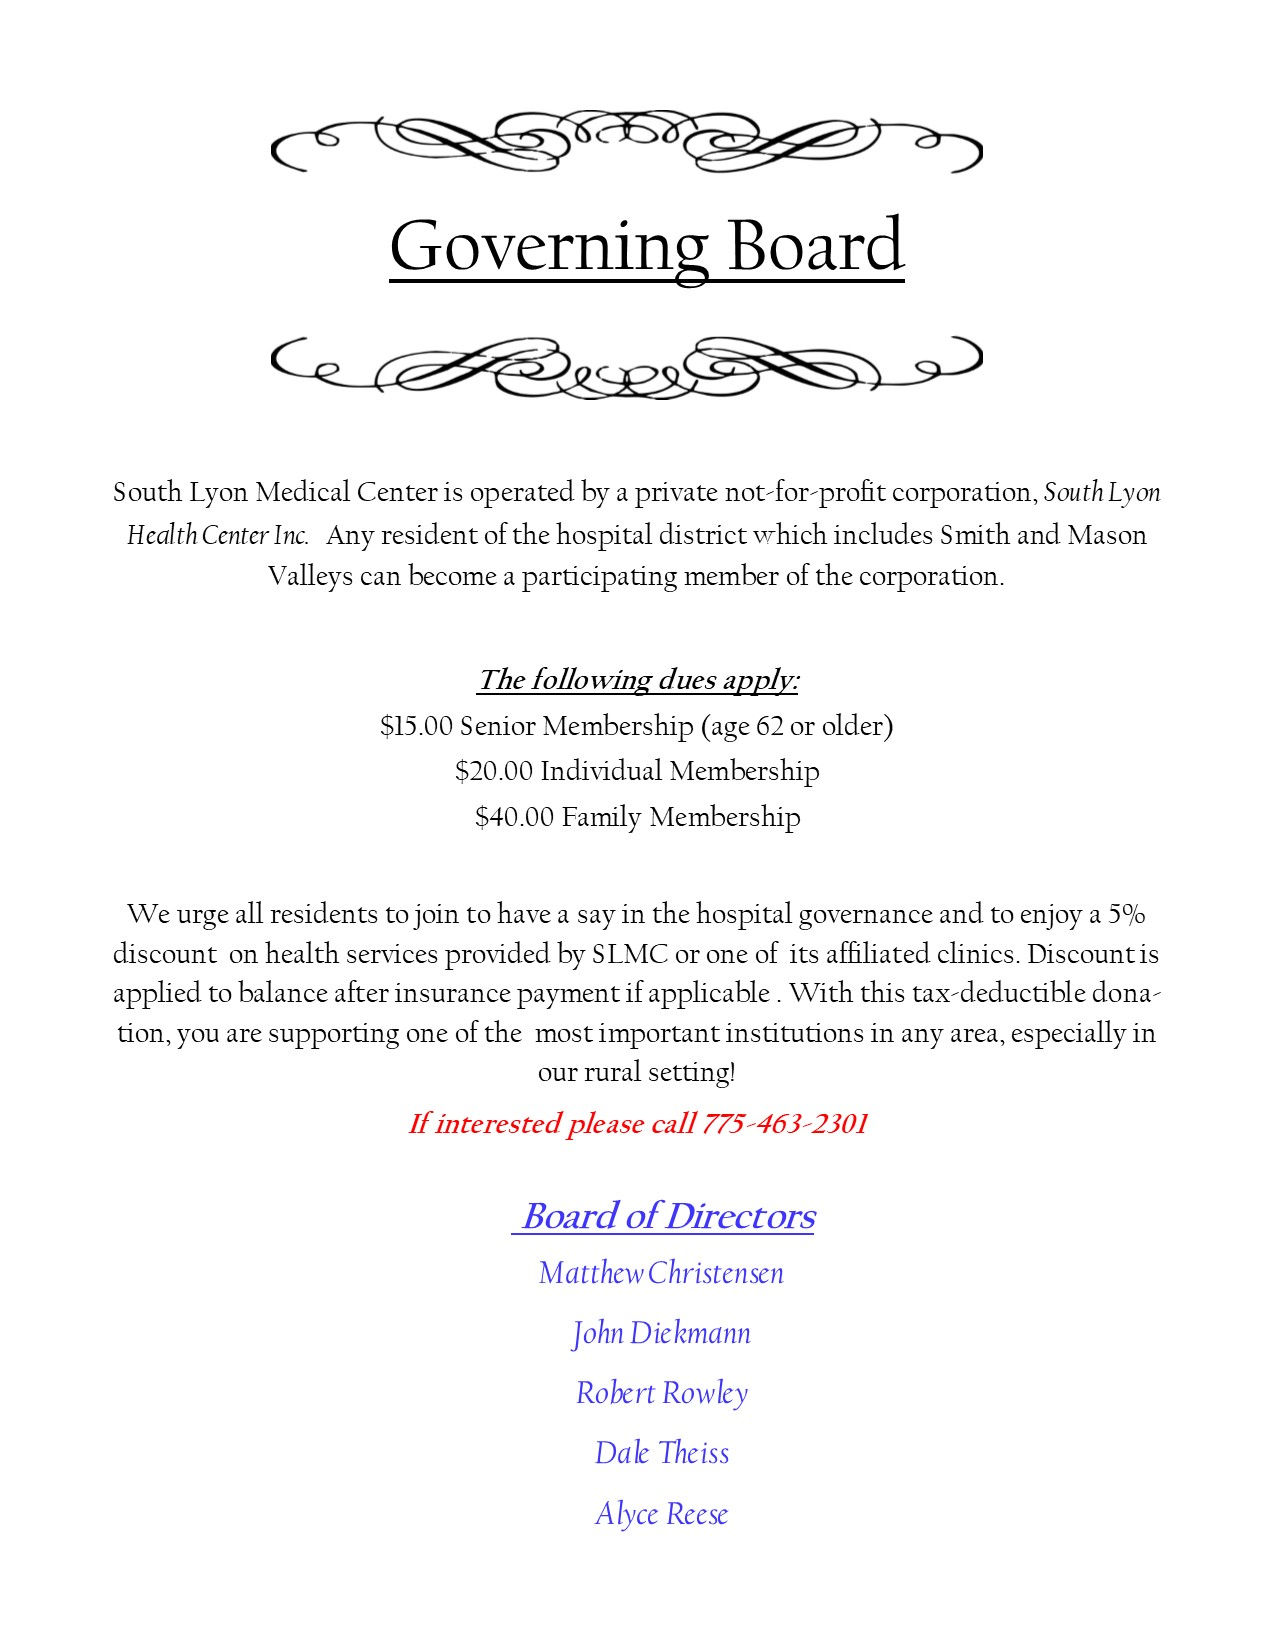 Governing Board CURRENT 802019